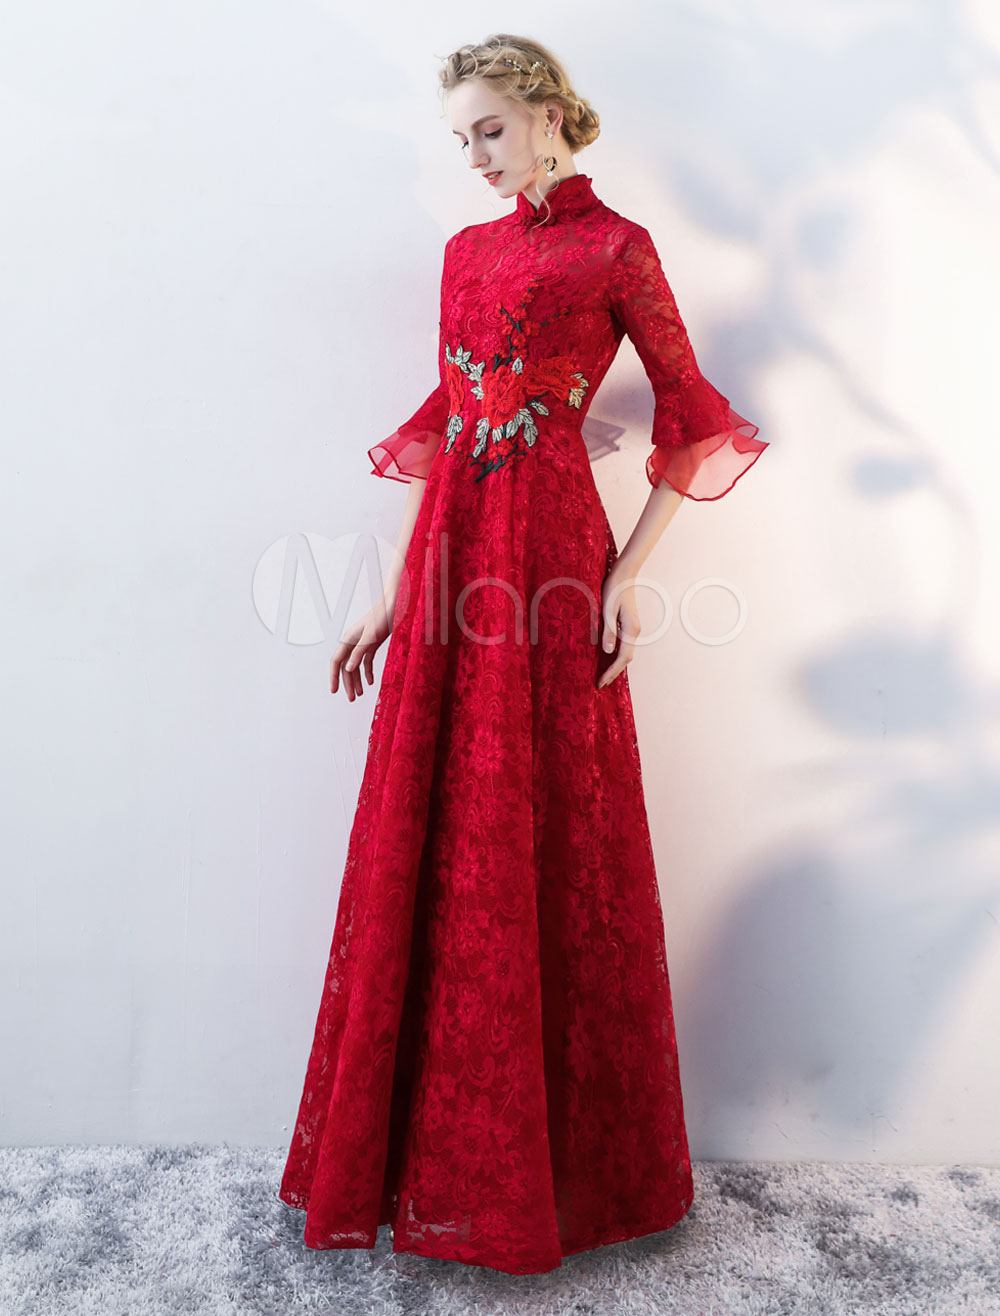 Buy Prom Dresses Long High Collar Bell Sleeve Evening Dress Lace Flowers Burgundy Floor Length Formal Dress for $118.79 in Milanoo store